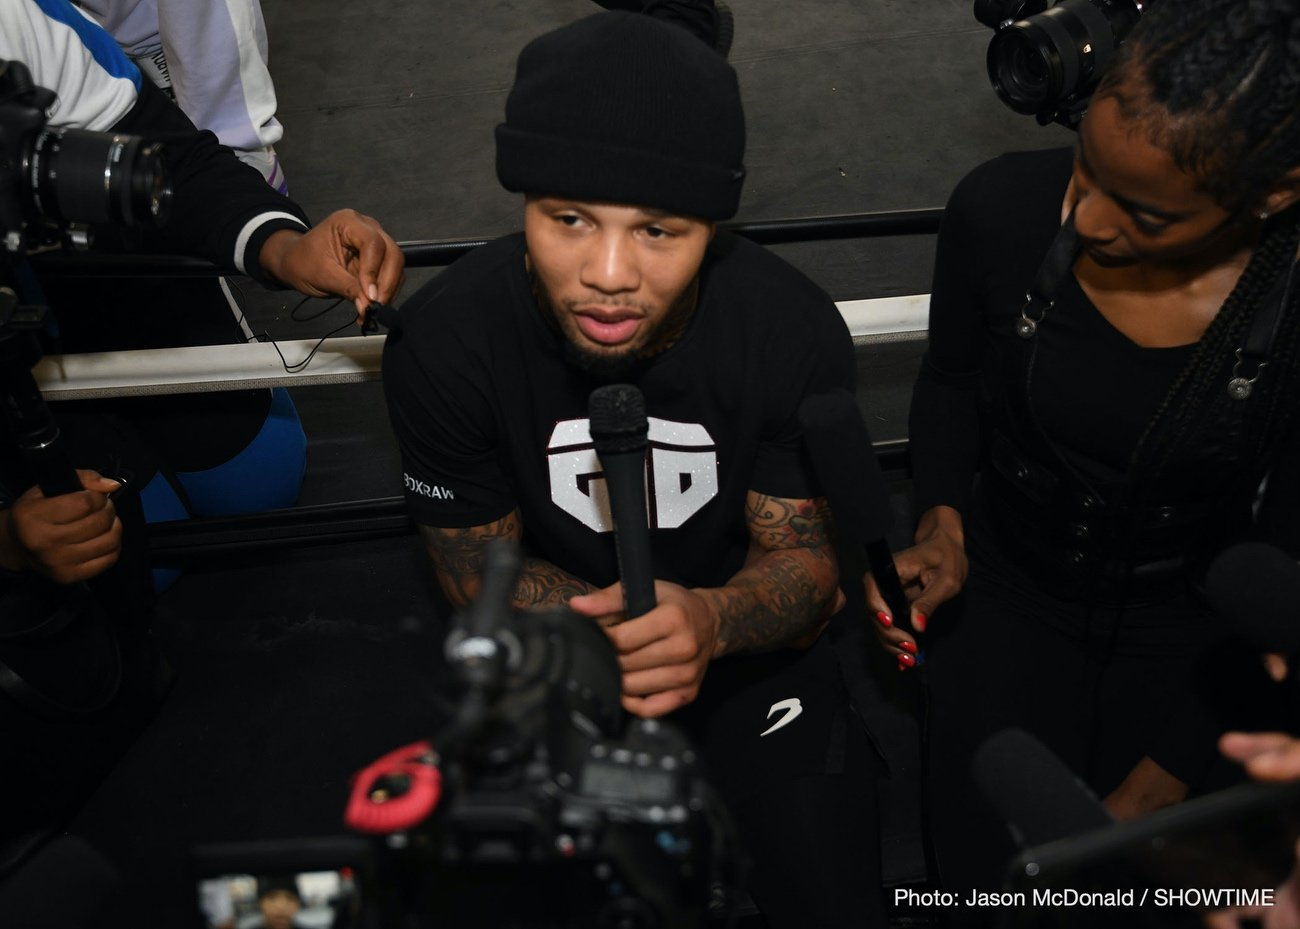 """Gervonta Davis - Will He Make Weight? World Champion Gervonta """"Tank"""" Davis answers the tough questions as he takes a stand on the Last Stand Podcast with Brian Custer. Tank talks about the viral video of him getting physical with his child's mother, getting in the ring with Vasyl Lomachenko, training with Floyd """"Money"""" Mayweather, and making weight for his much-anticipated Pay Per View fight against Leo Santa Cruz. Davis' road to becoming a boxing star is sure to inspire many."""